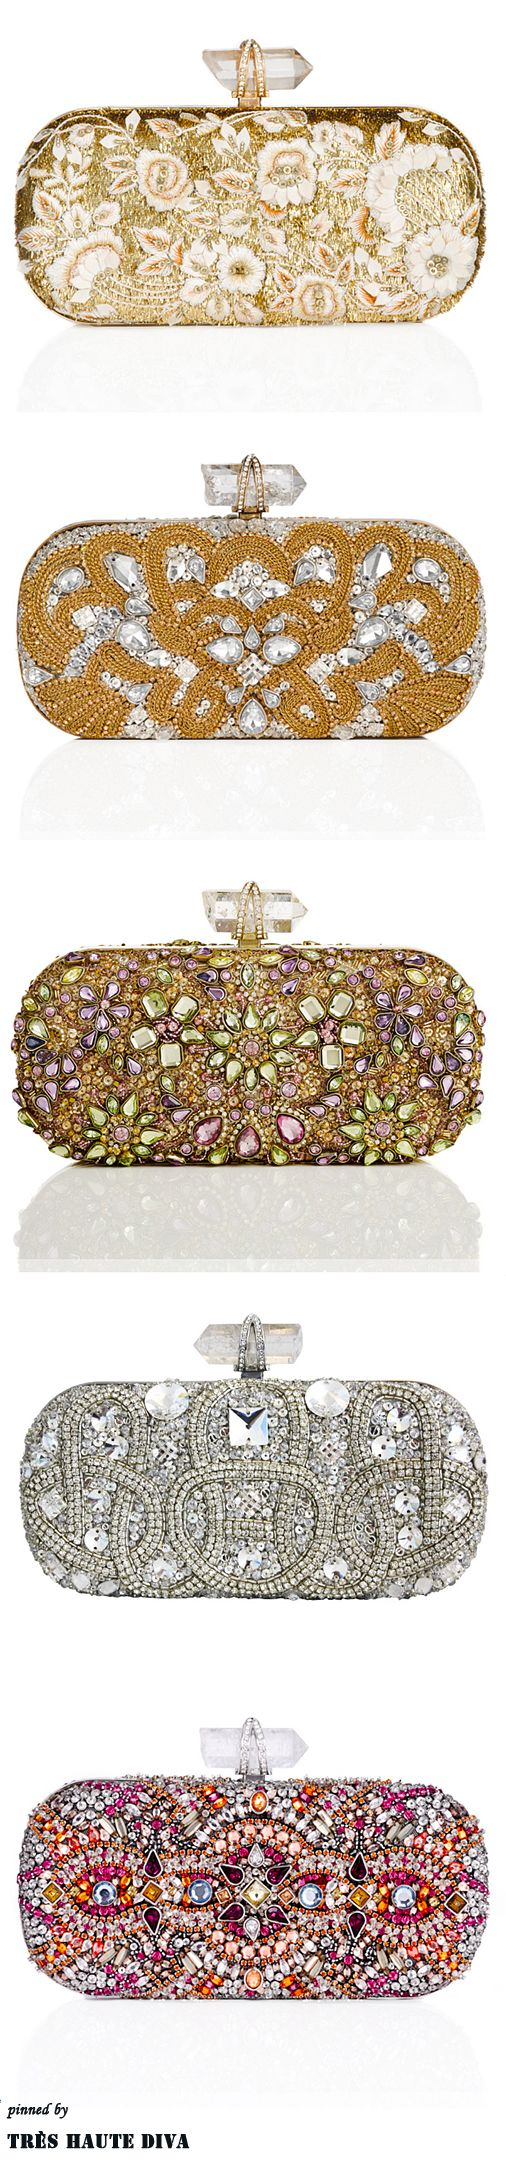 Marchesa clutches 2013-14